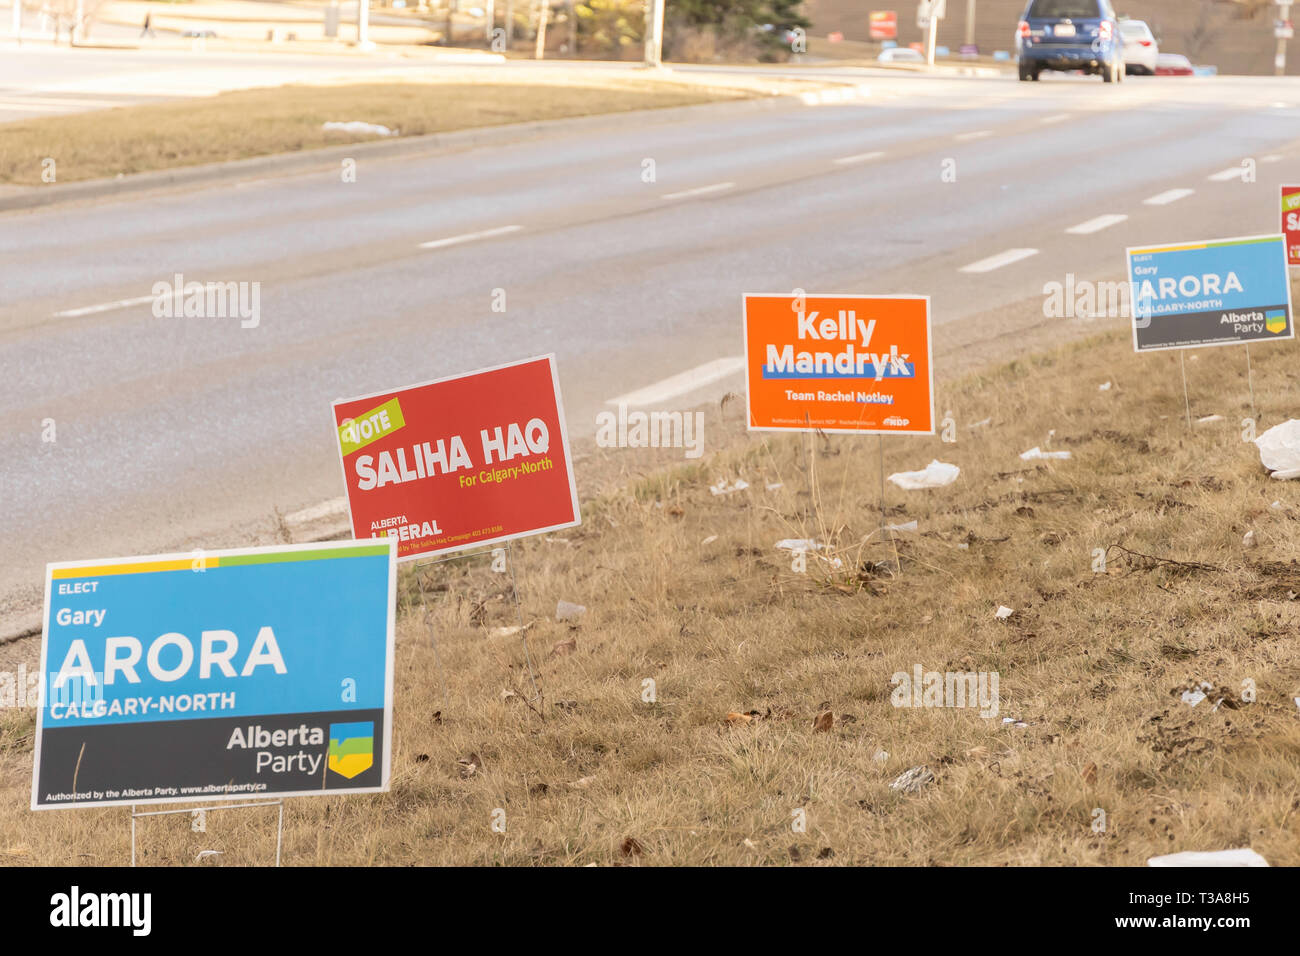 April 7 2019 - Calgary., Alberta , Canada - Candidate campaign signs on road for provincial elections - Stock Image